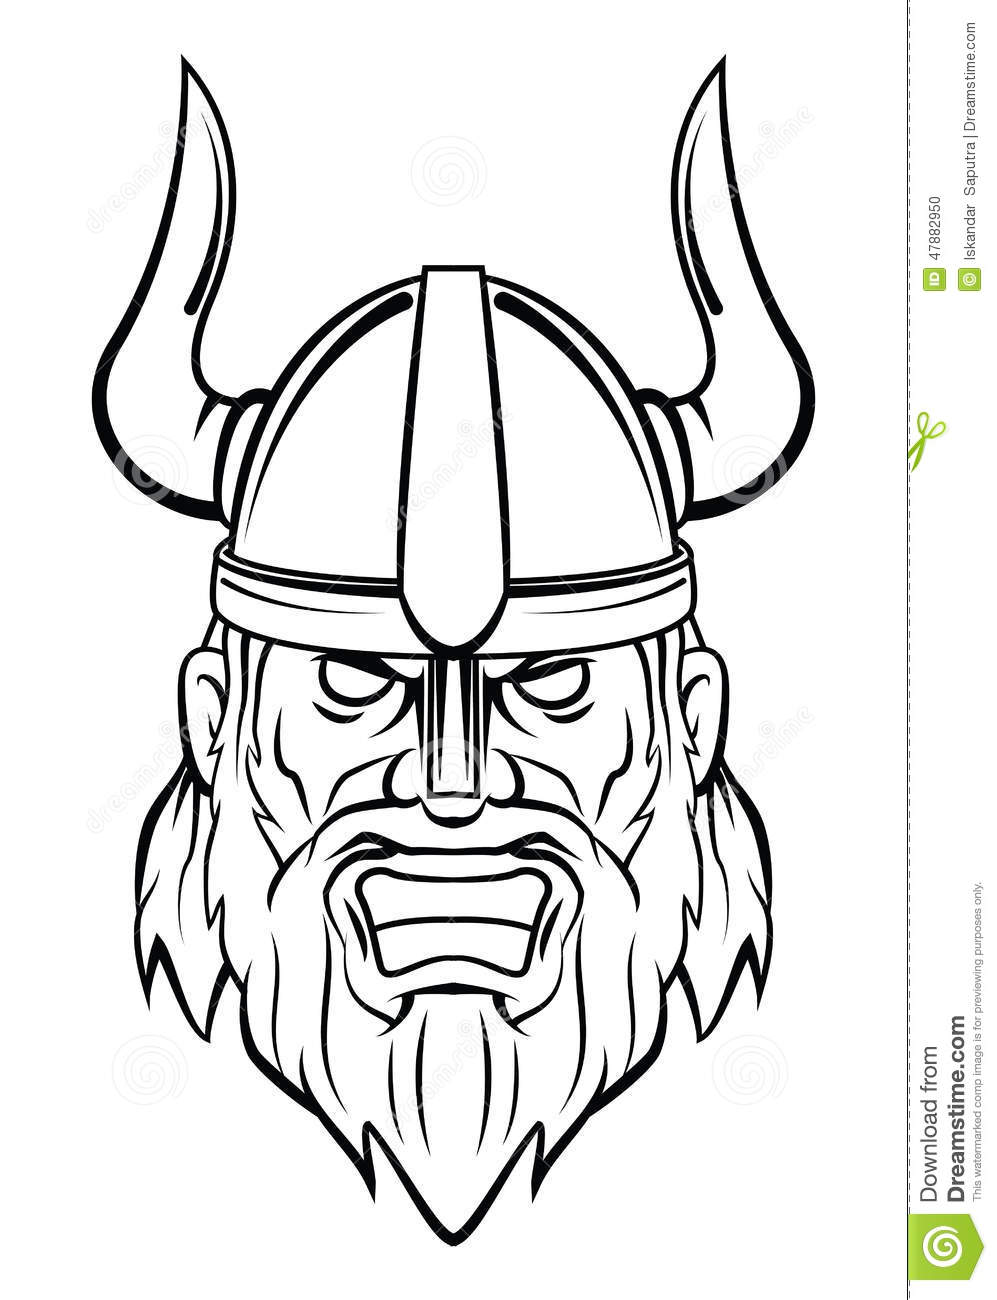 how to know if your viking royalty